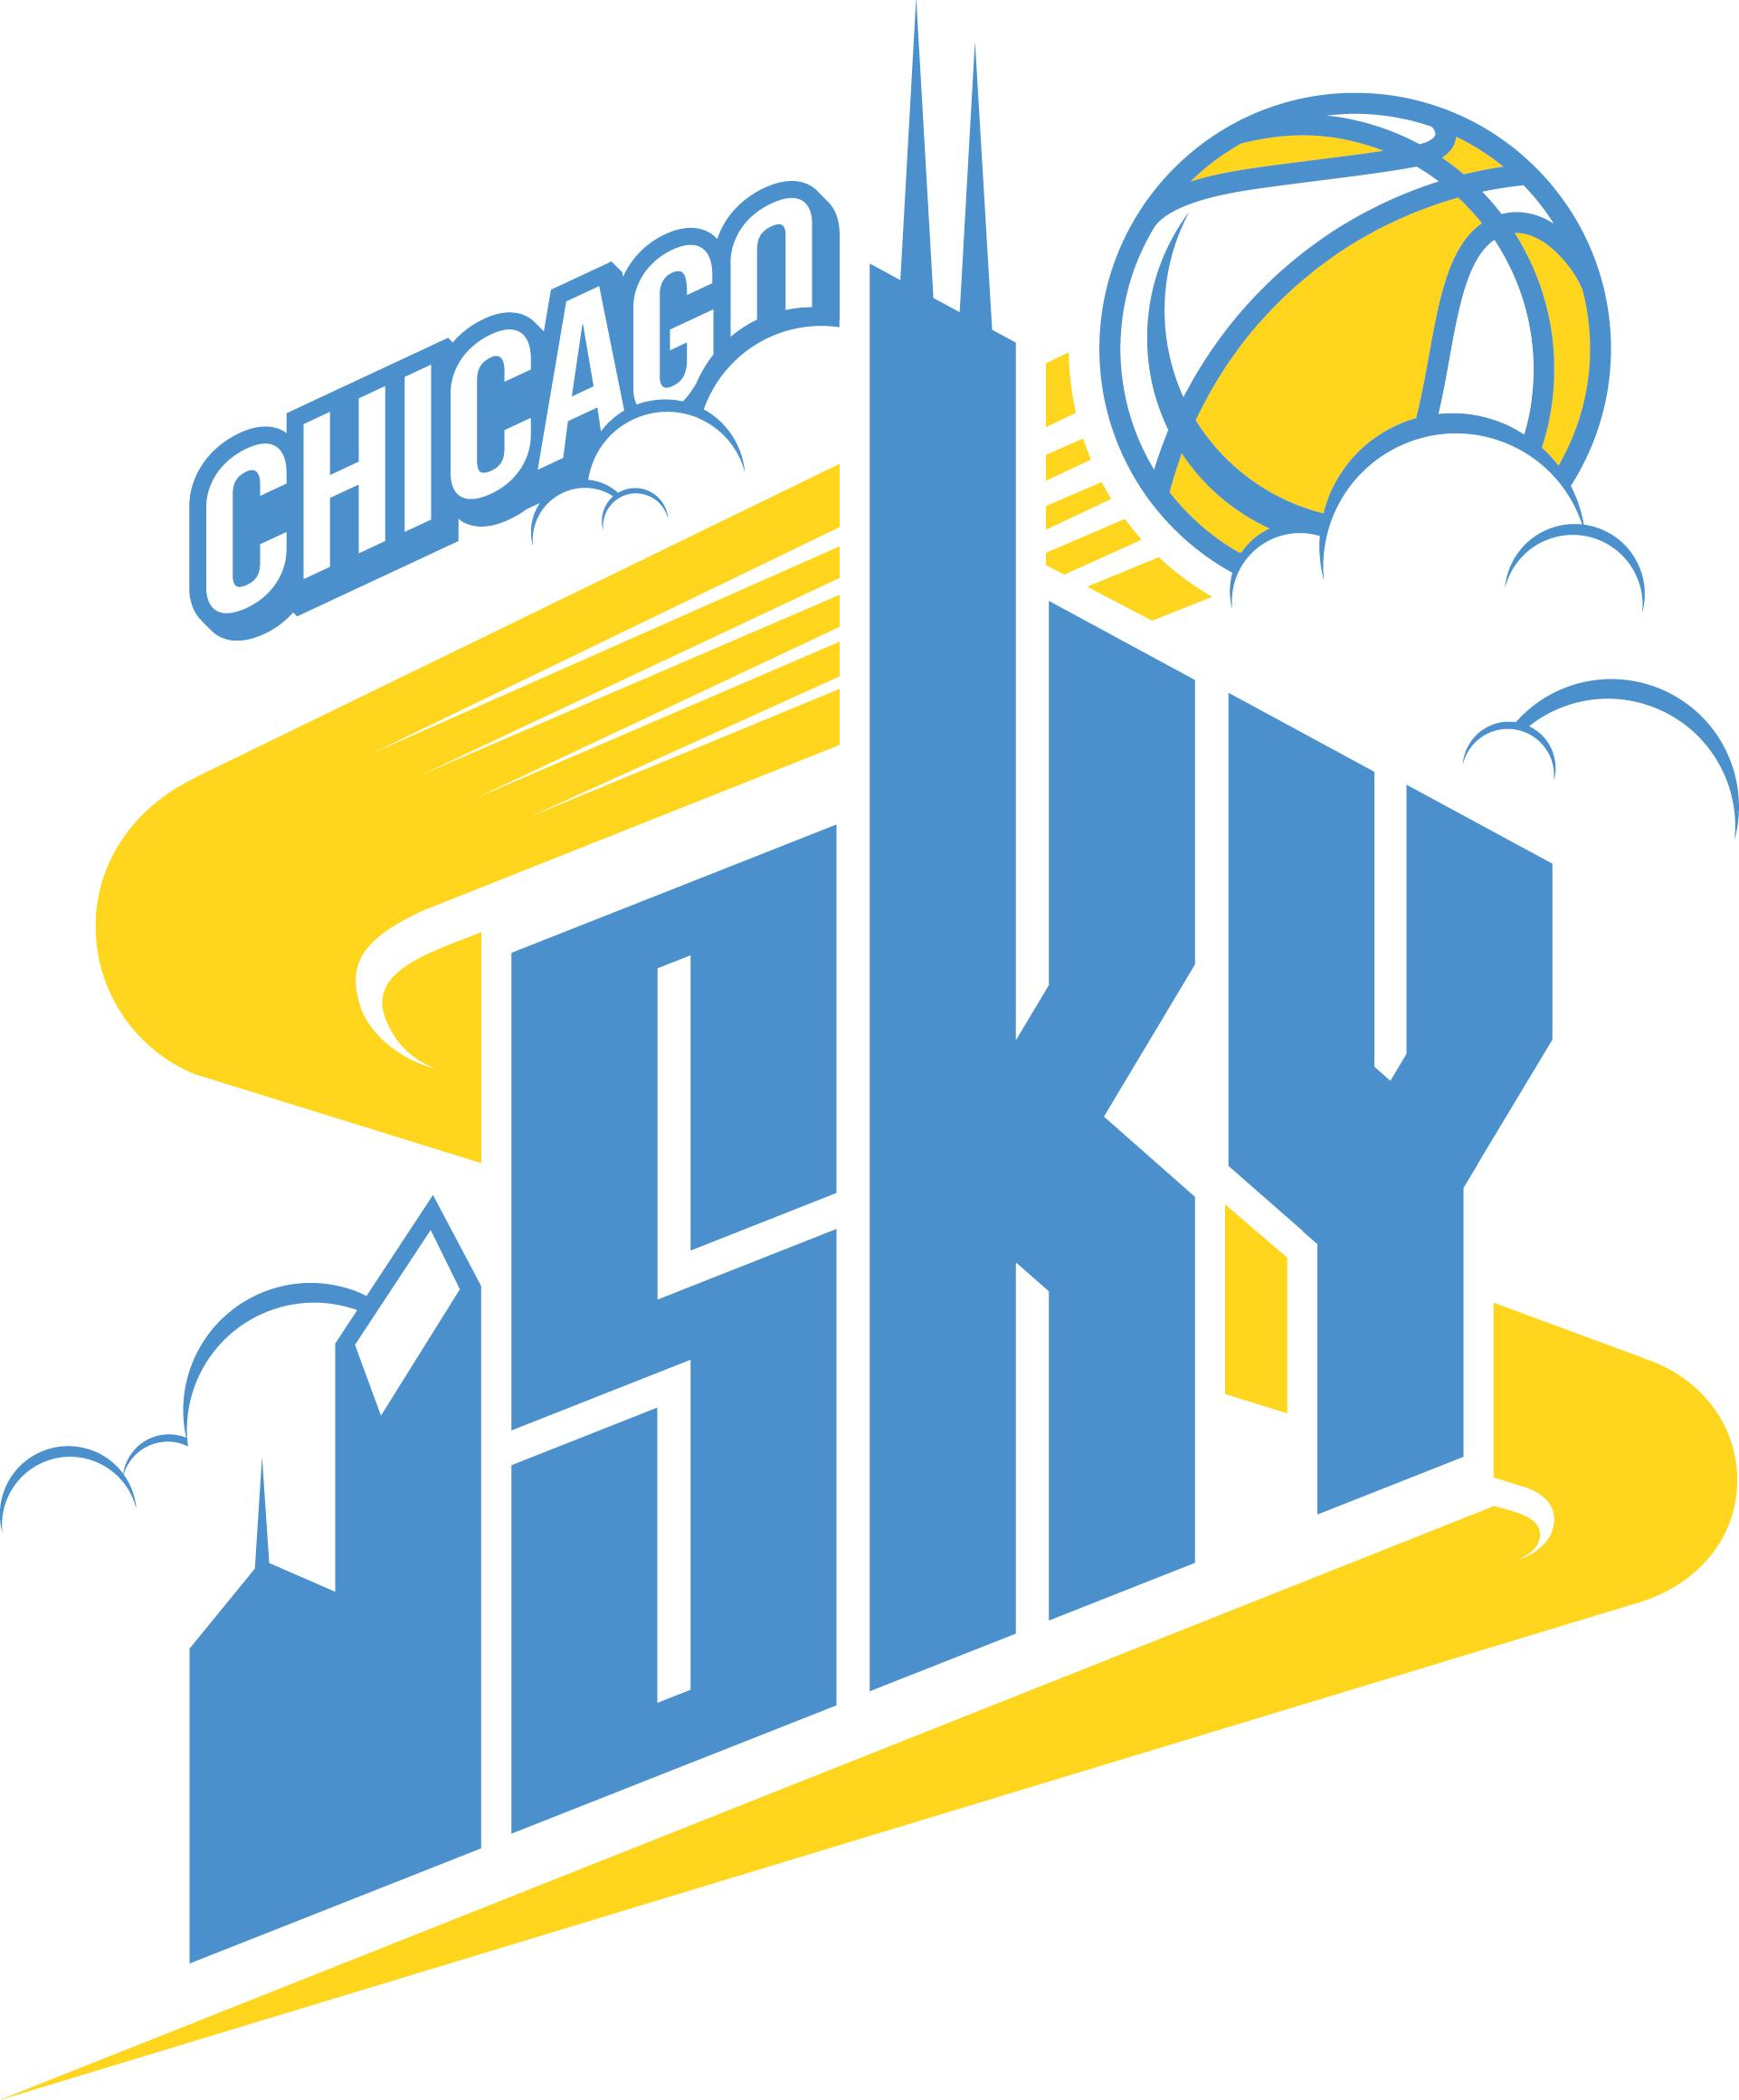 Chicago Sky Small Business Workshop Presented